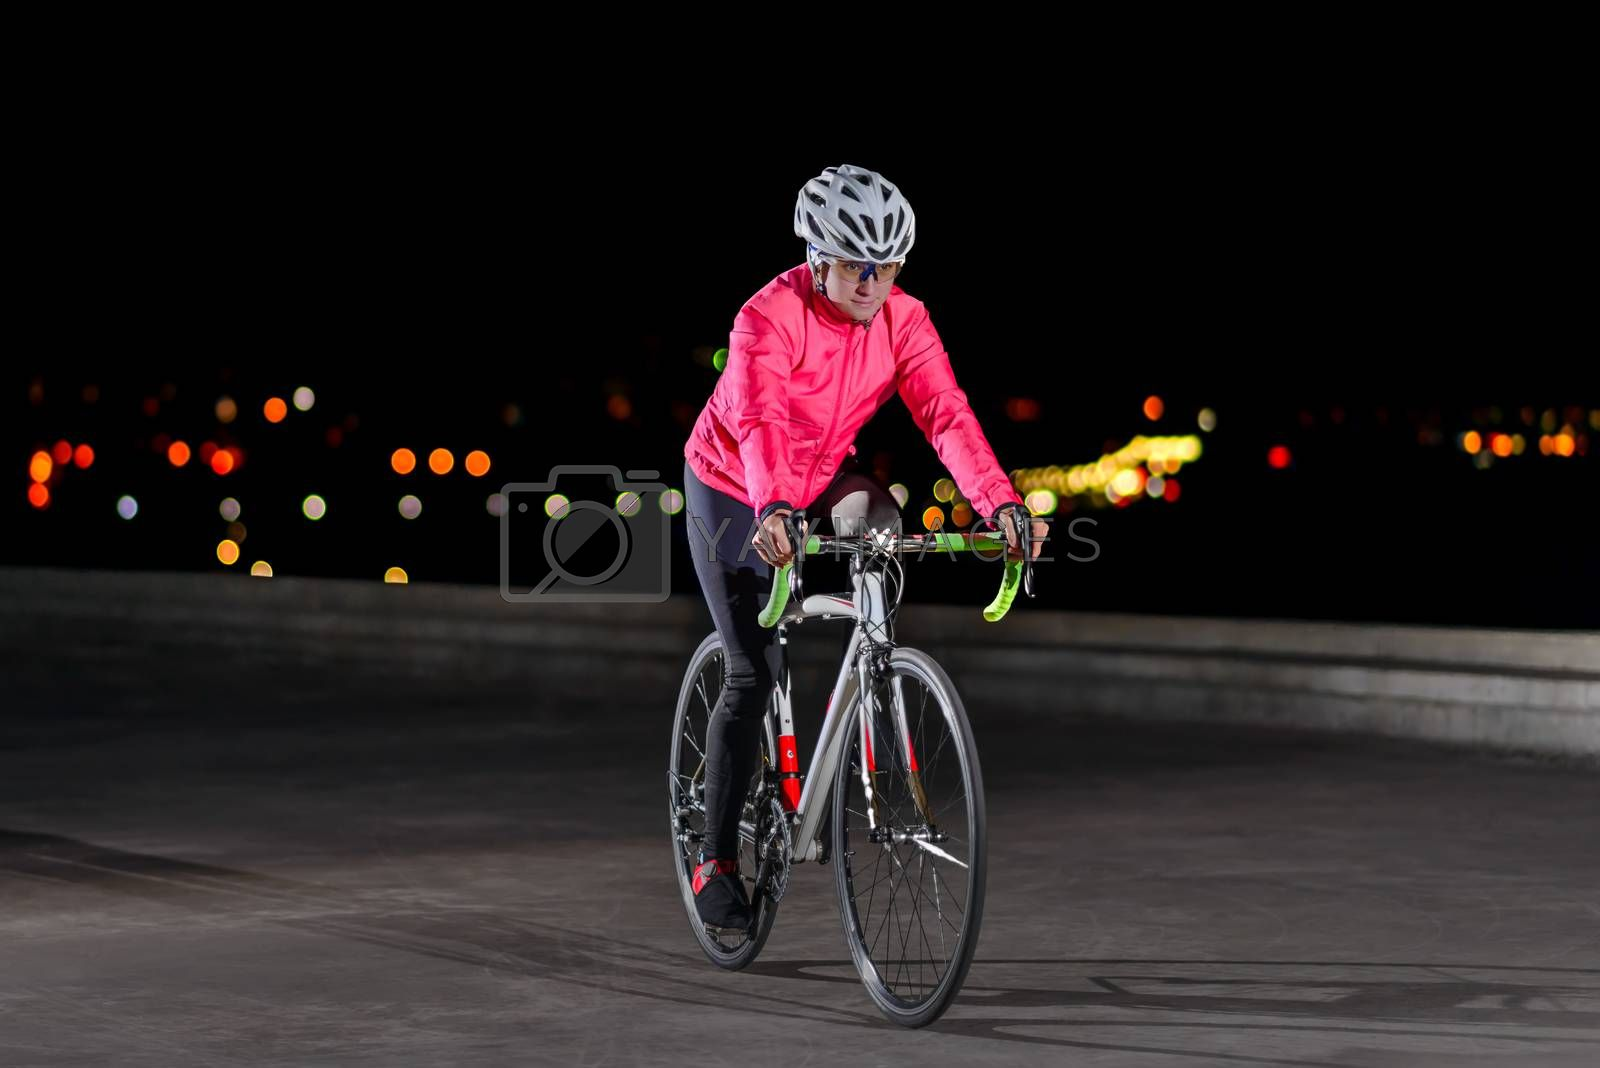 Young Woman Cyclist Riding Road Bike. Night City Lights at the Background. Healthy Lifestyle and Urban Sport Concept.